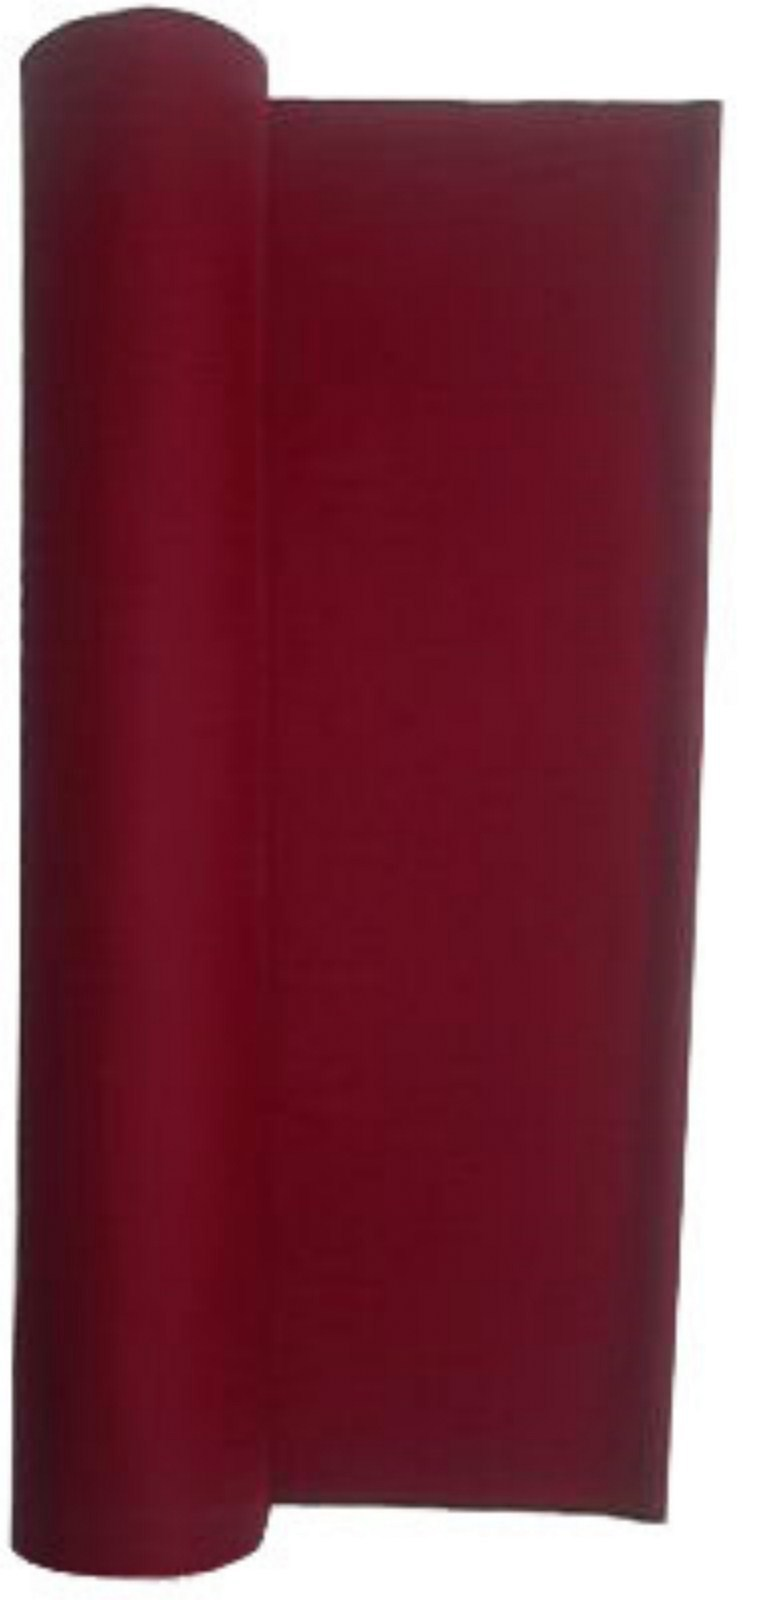 Performance Grade Pool Table Felt - Billiard Cloth Burgundy For 8' Table